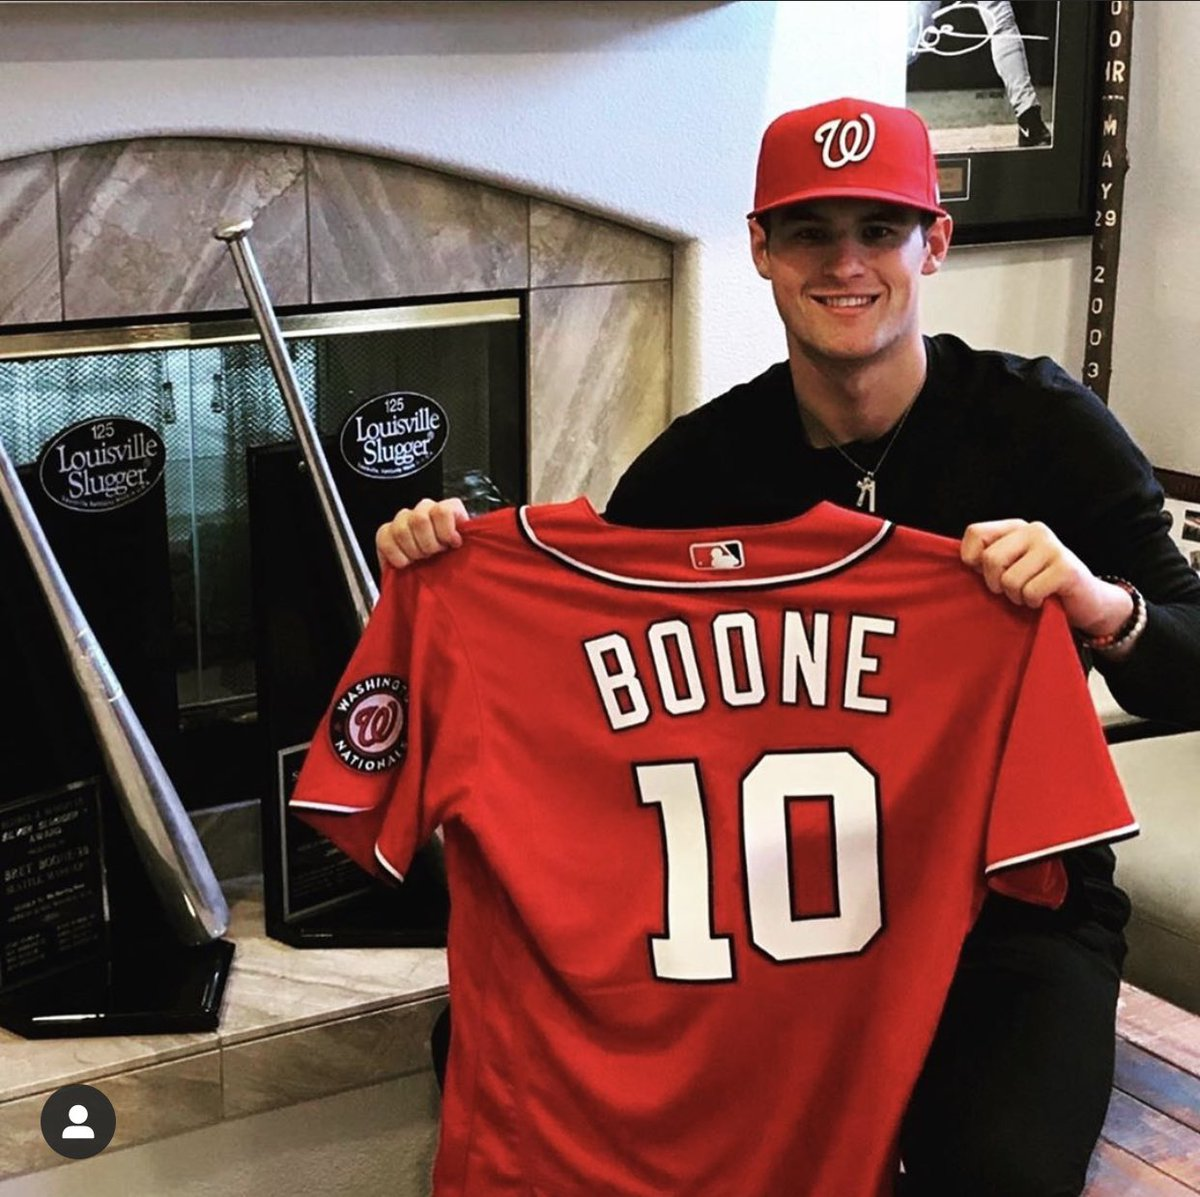 So proud of @JacobBBoone for signing with the @Nationals. Way to go Kid! @theboone29 @AaronBoone https://t.co/S0vaq7WHju